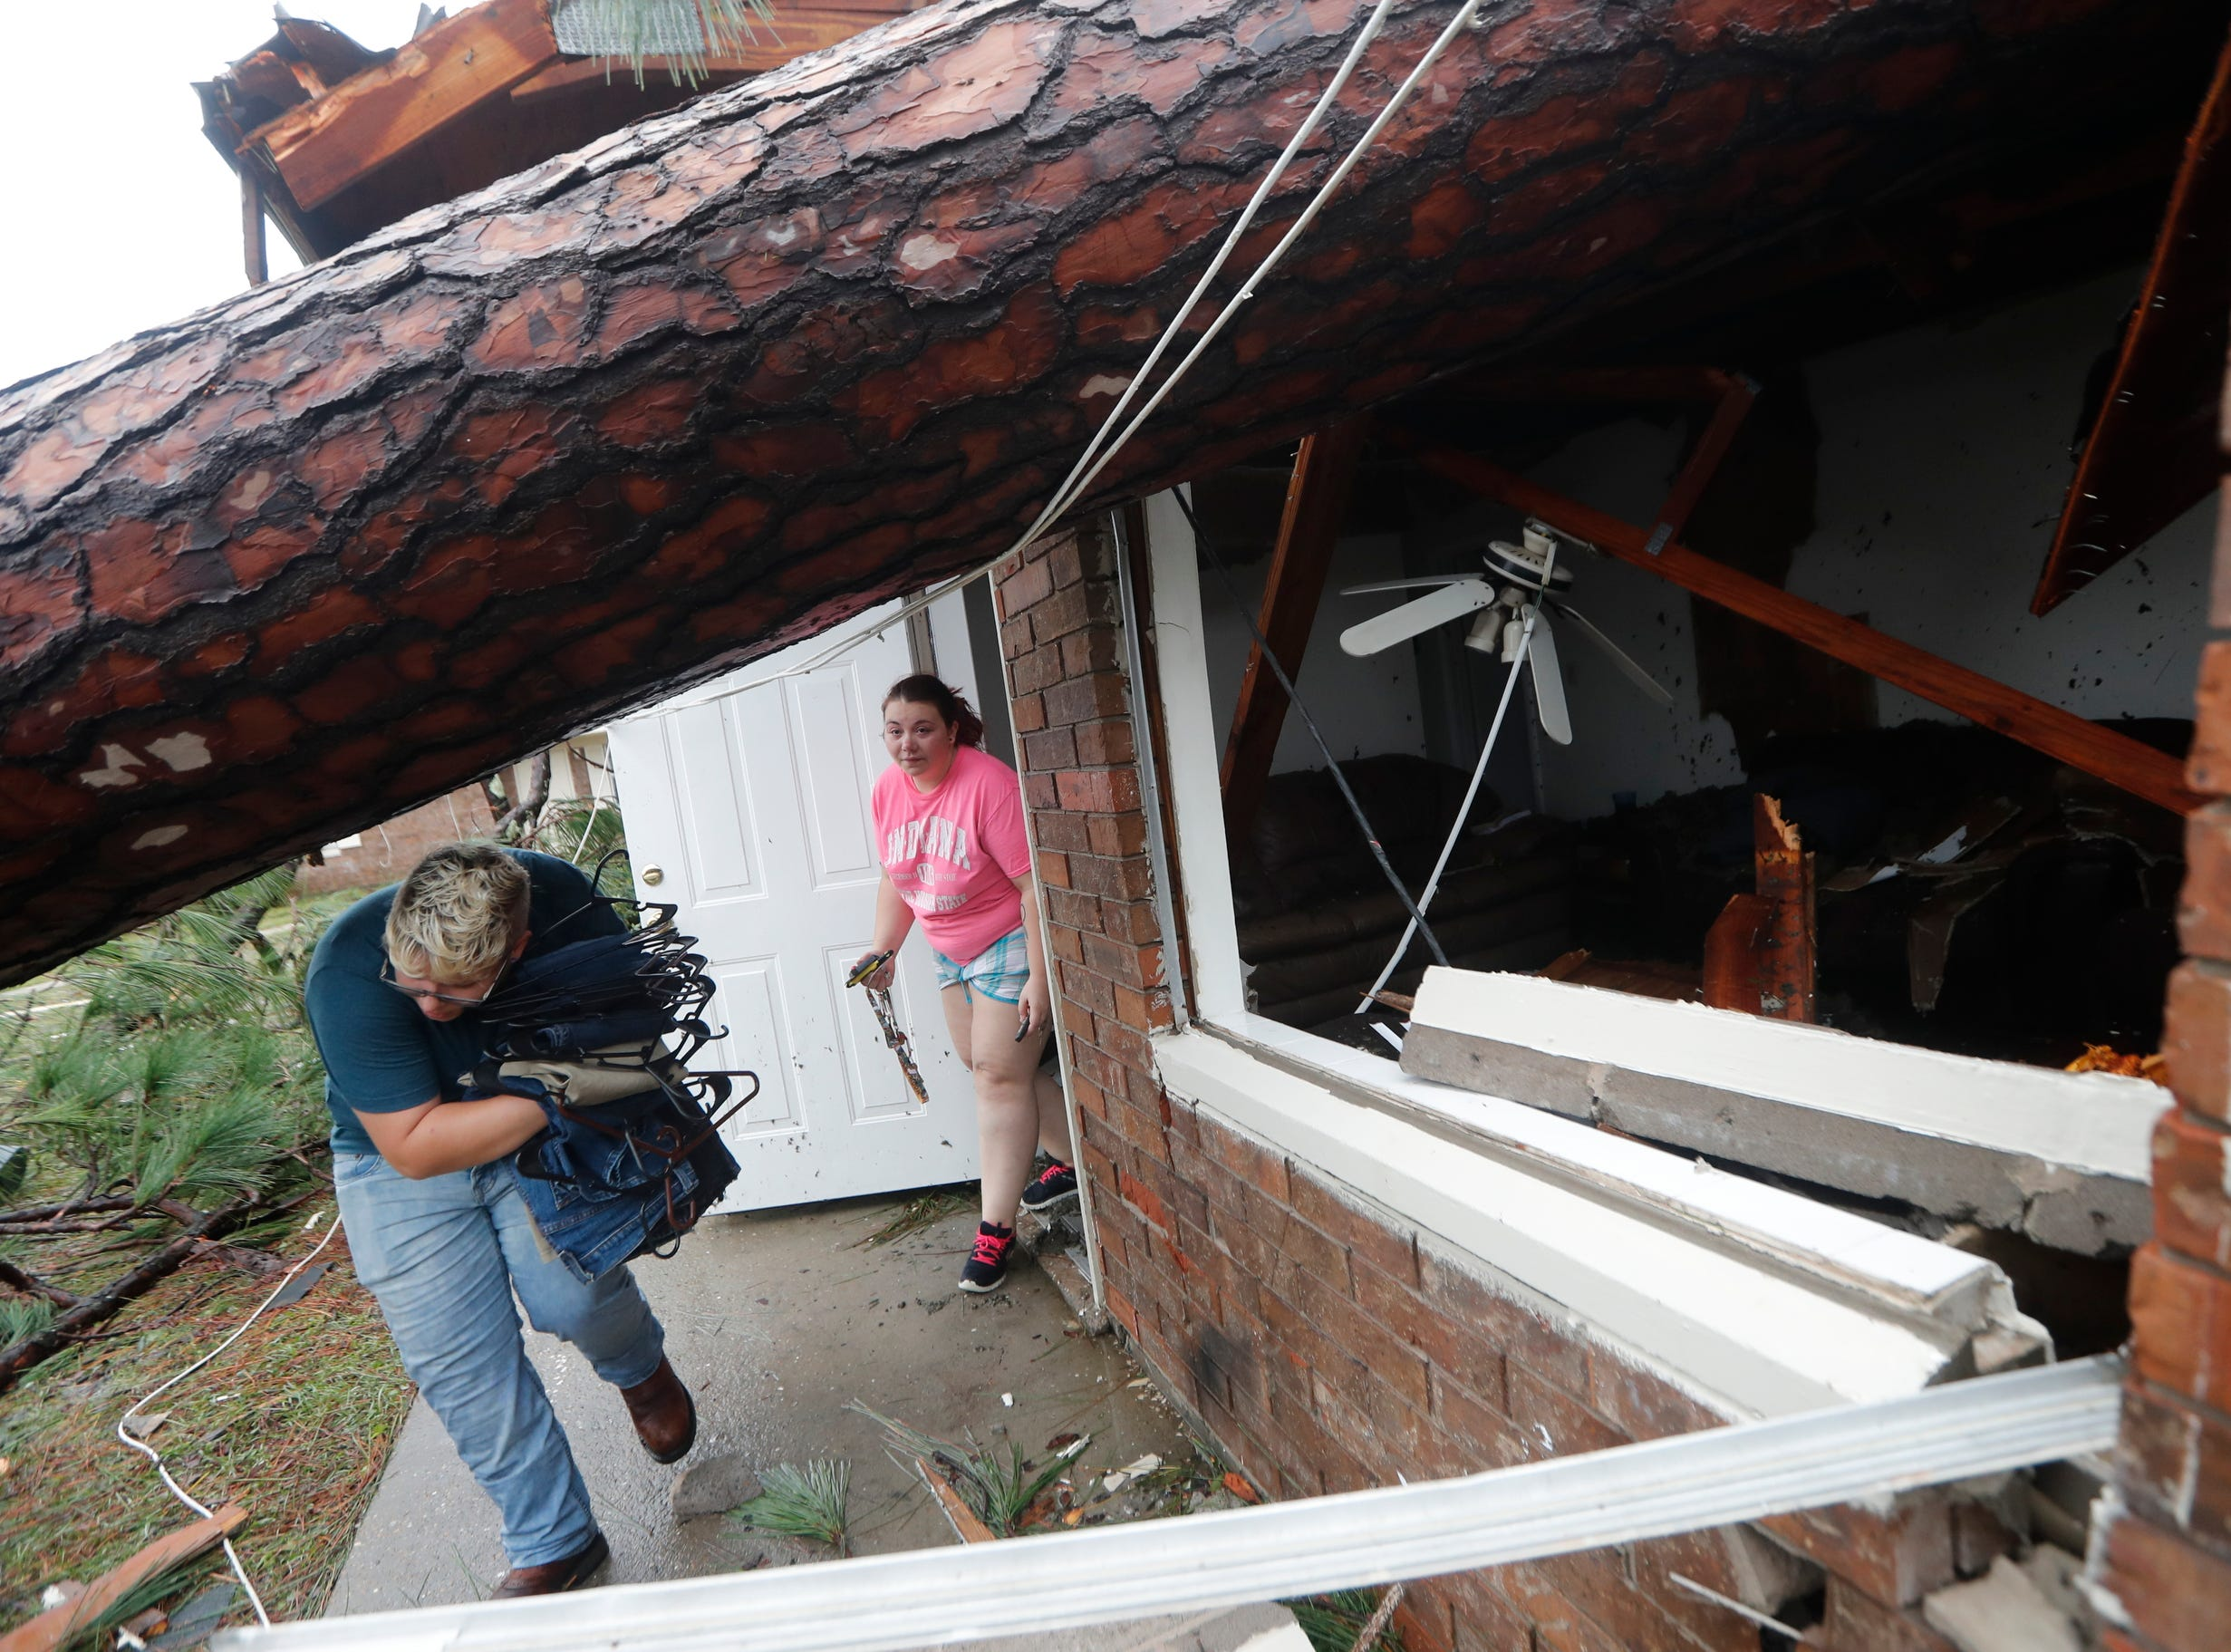 Megan Williams, left, and roommate Kaylee O'Brian take belongings from their destroyed home after several trees fell on the house during Hurricane Michael in Panama City, Fla.,